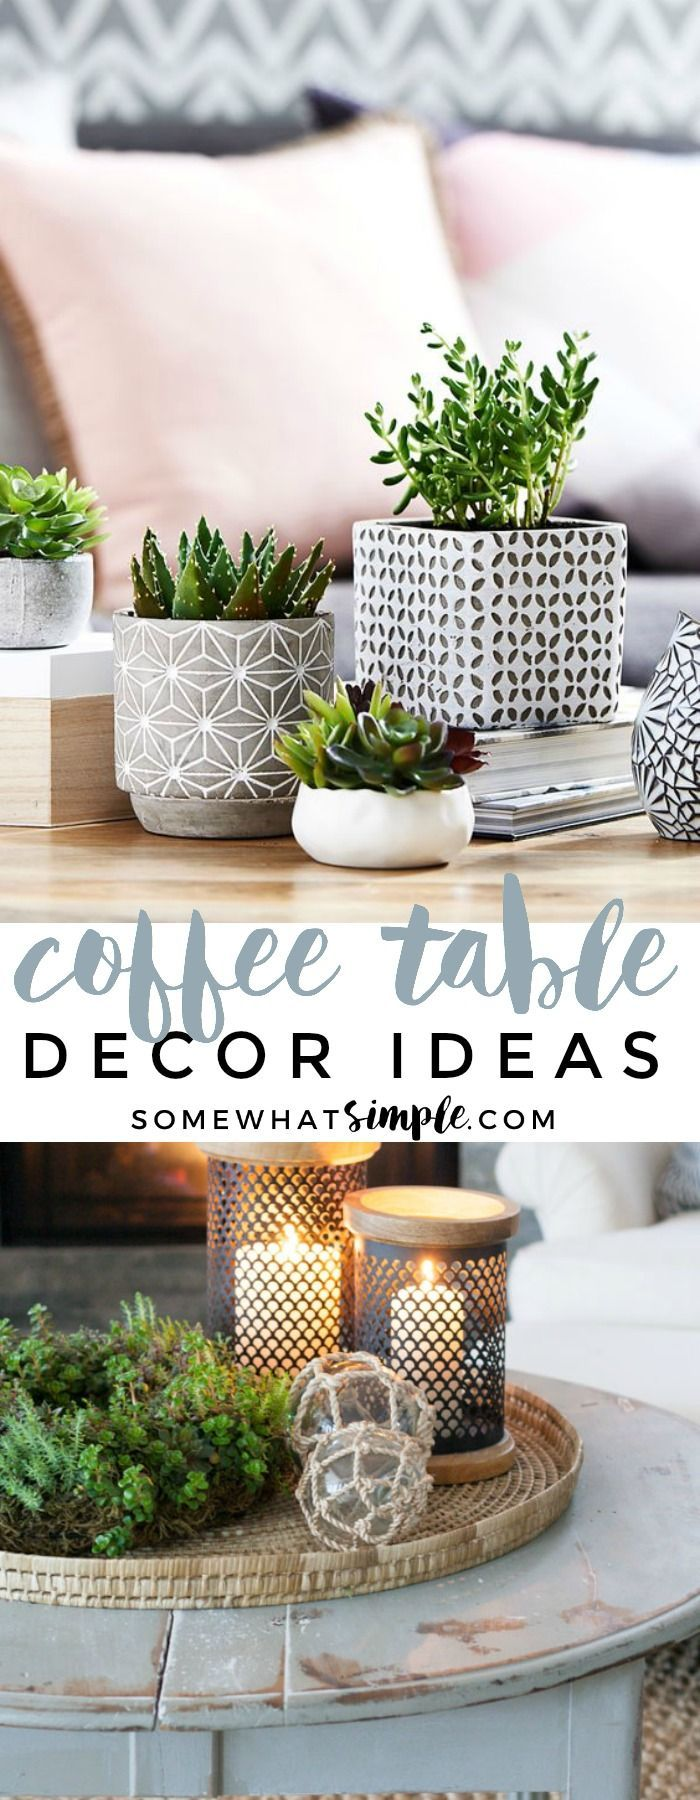 5 styling tips and coffee table decor ideas home decorating rh pinterest com